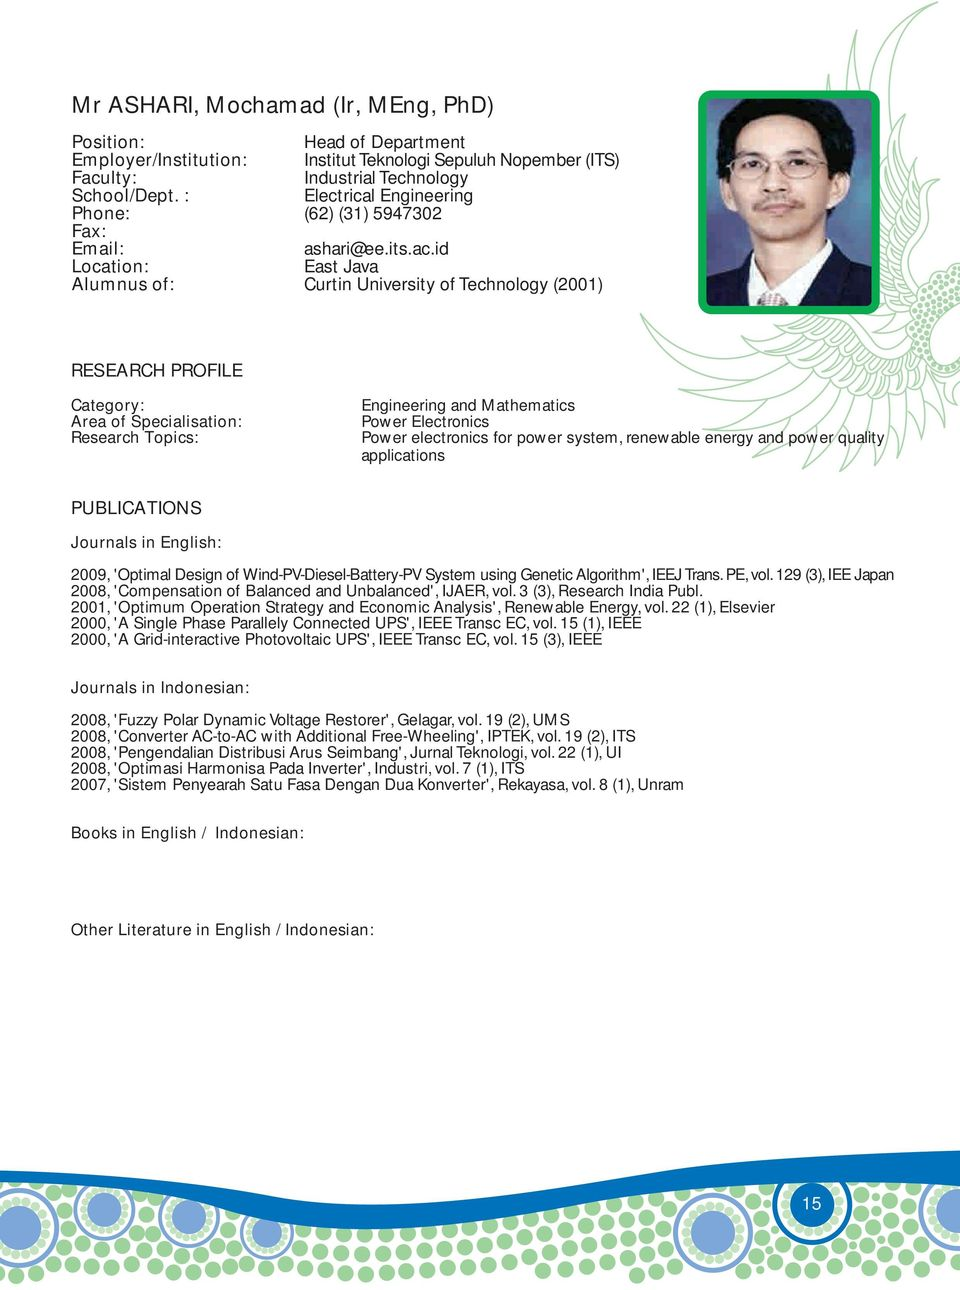 id East Java Alumnus of: Curtin University of Technology (2001) Engineering and Mathematics Power Electronics Power electronics for power system, renewable energy and power quality applications 2009,